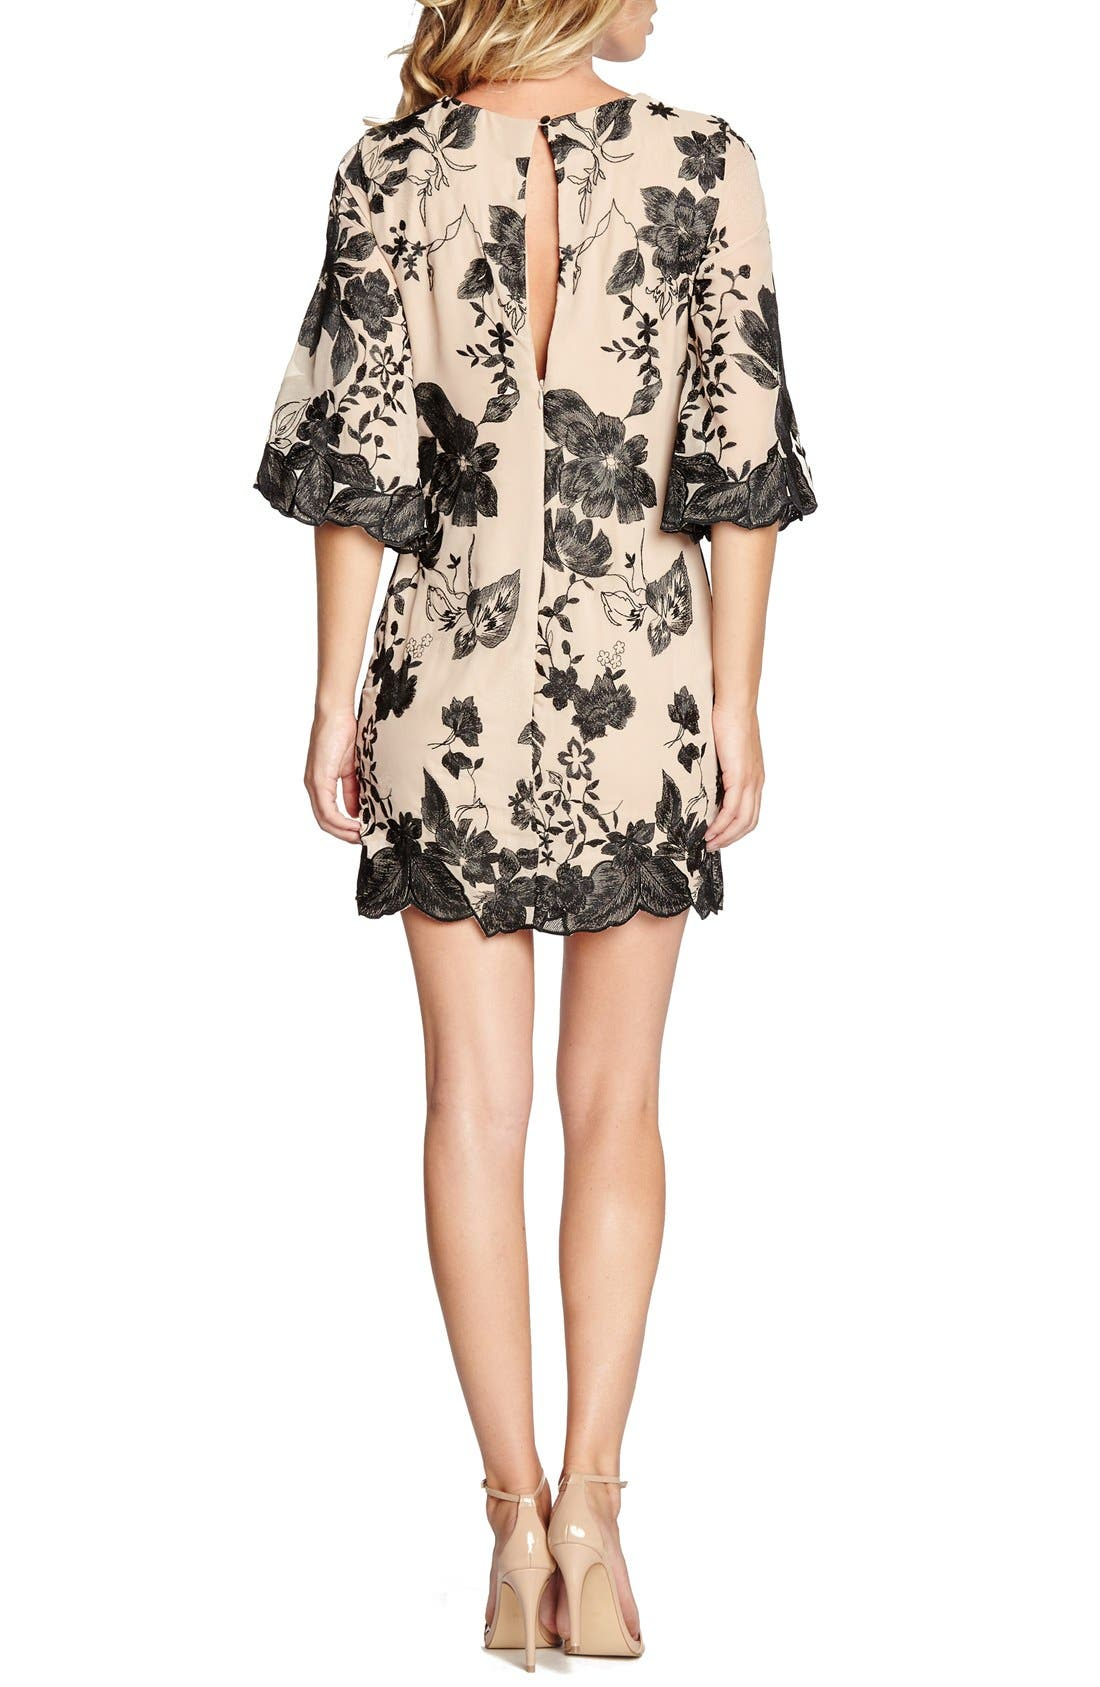 'Paige' Metallic Embroidered Chiffon Shift Dress,                             Alternate thumbnail 6, color,                             259